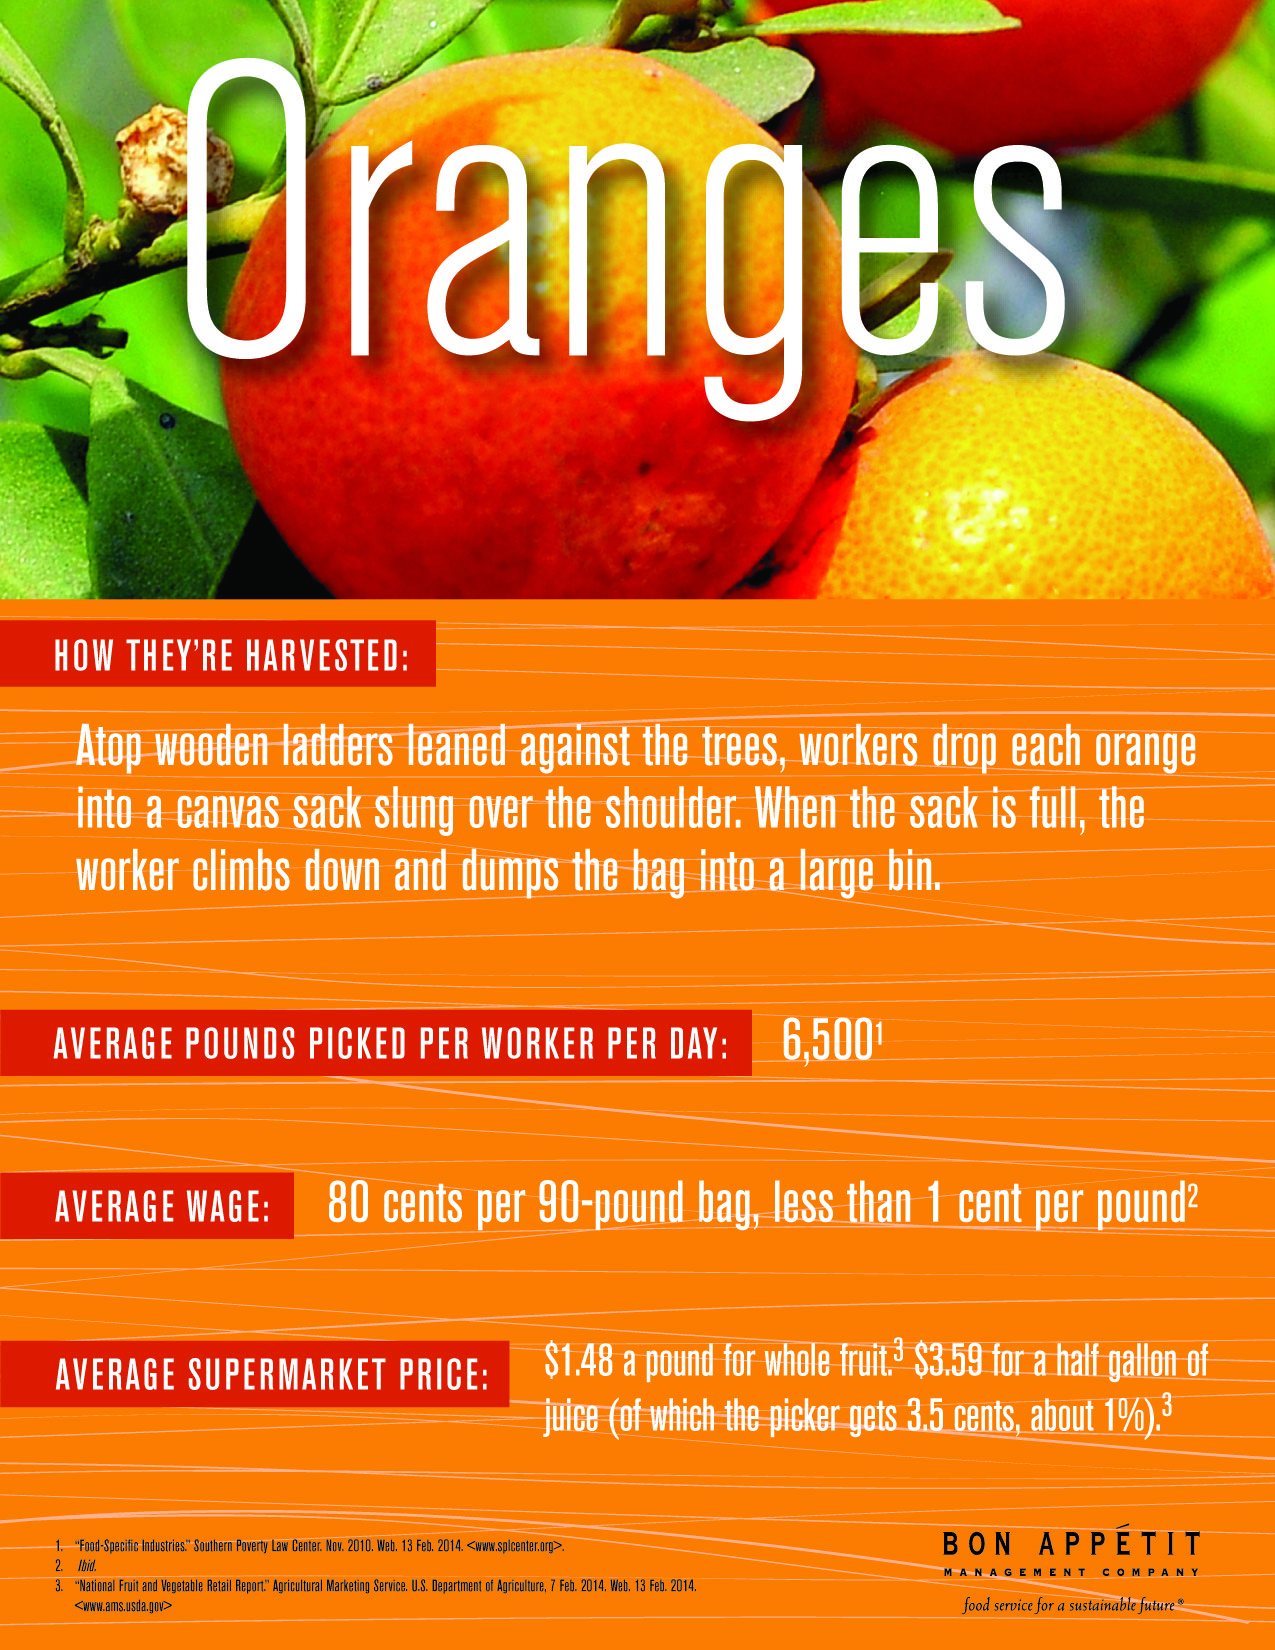 14-4621TableMini-Oranges3.jpg